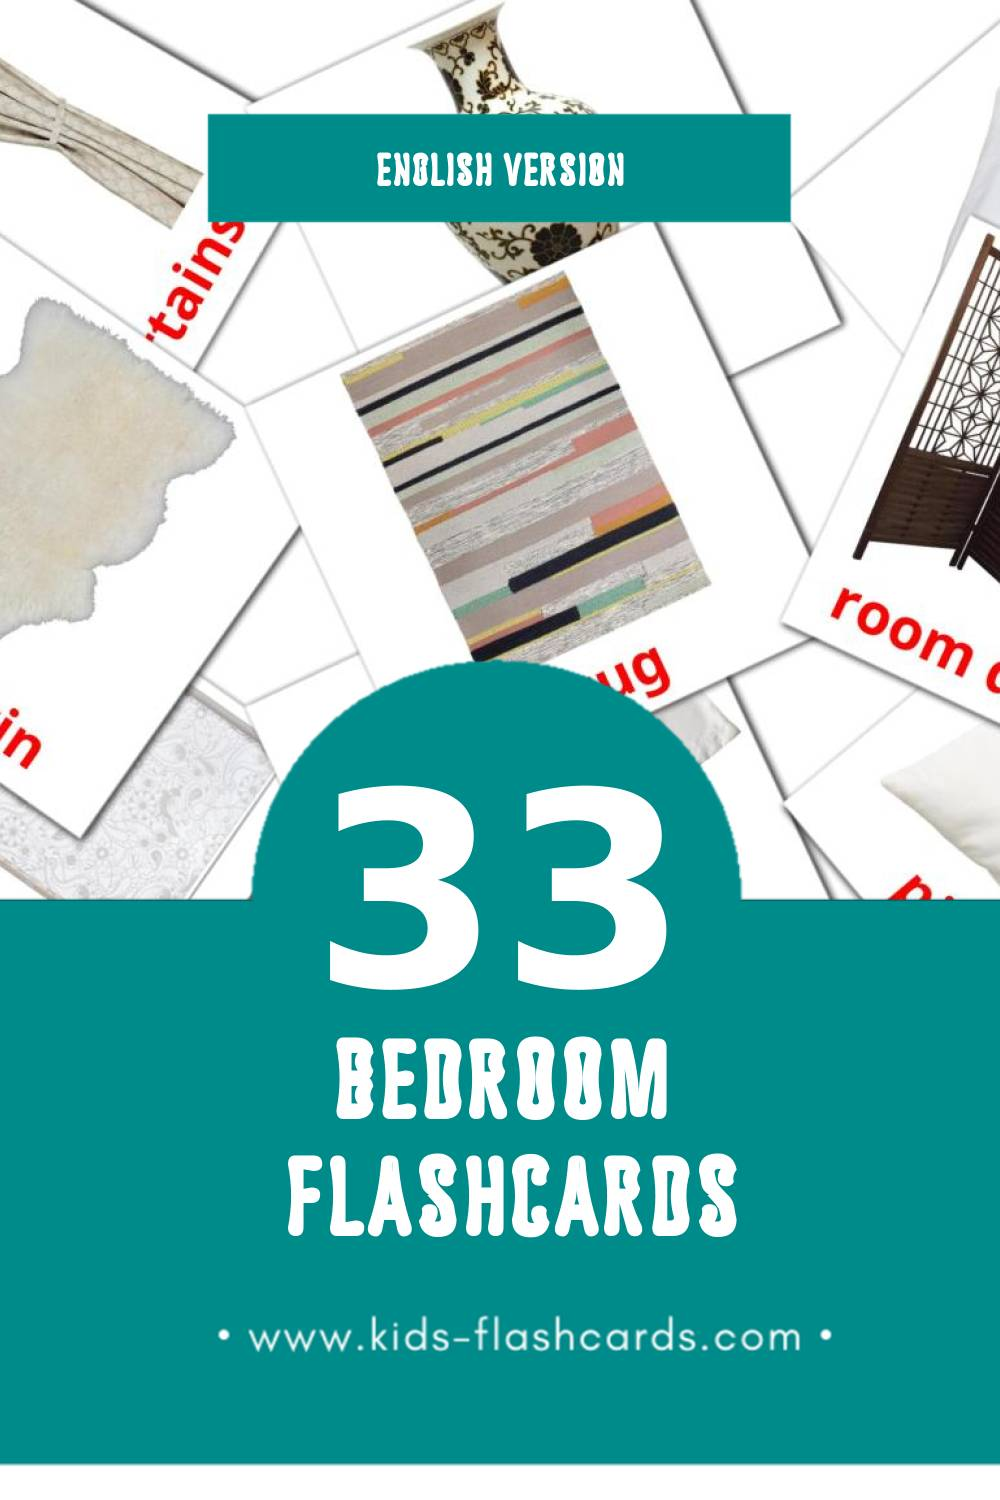 Visual Bedroom Flashcards for Toddlers (33 cards in English)